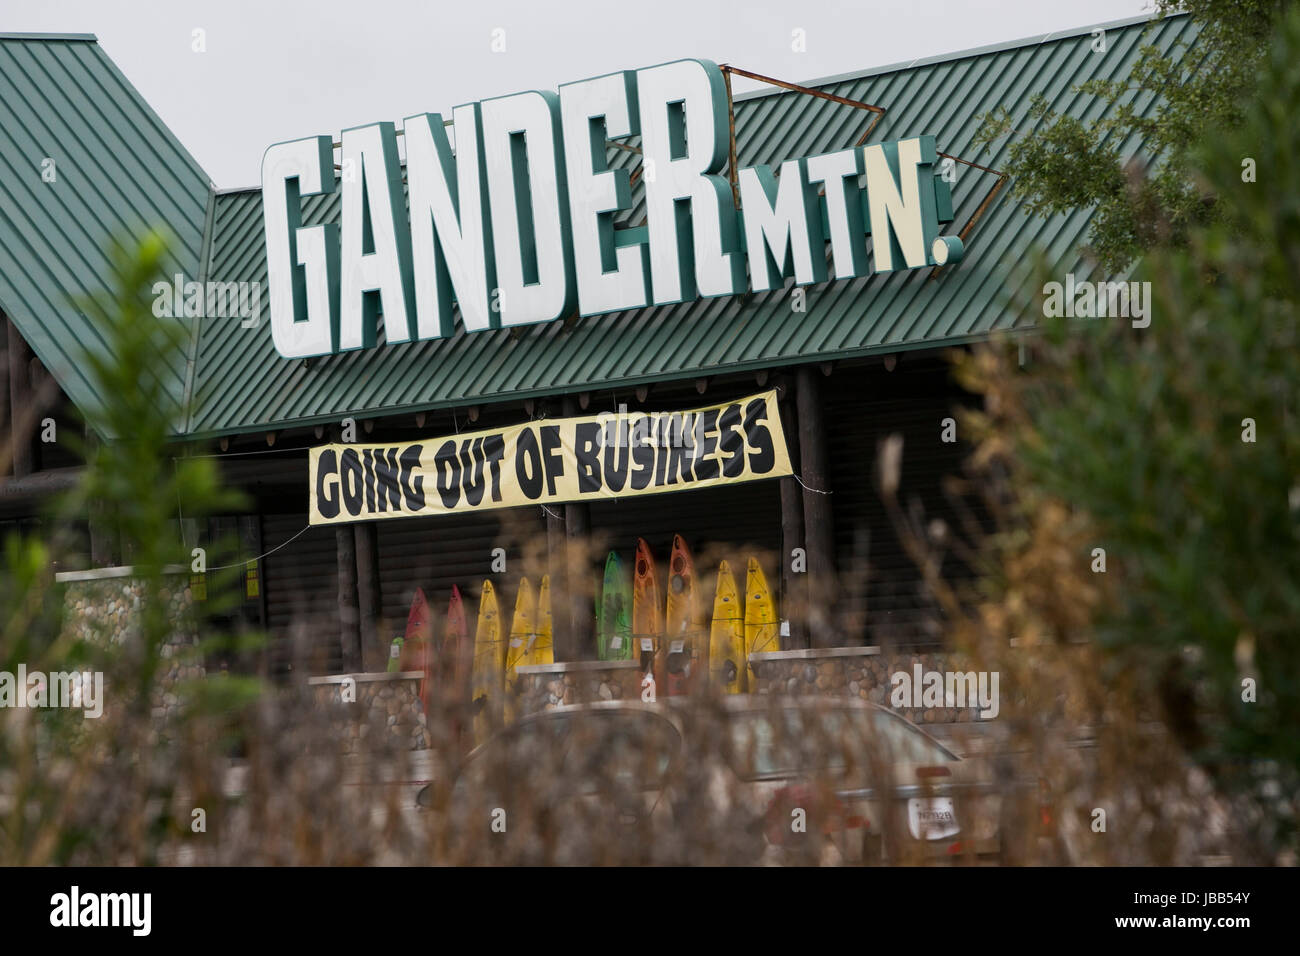 "A ""Going Out Of Business"" banner at a Gander Mountain retail store in Houston, Texas, on May 28, 2017. Stock Photo"